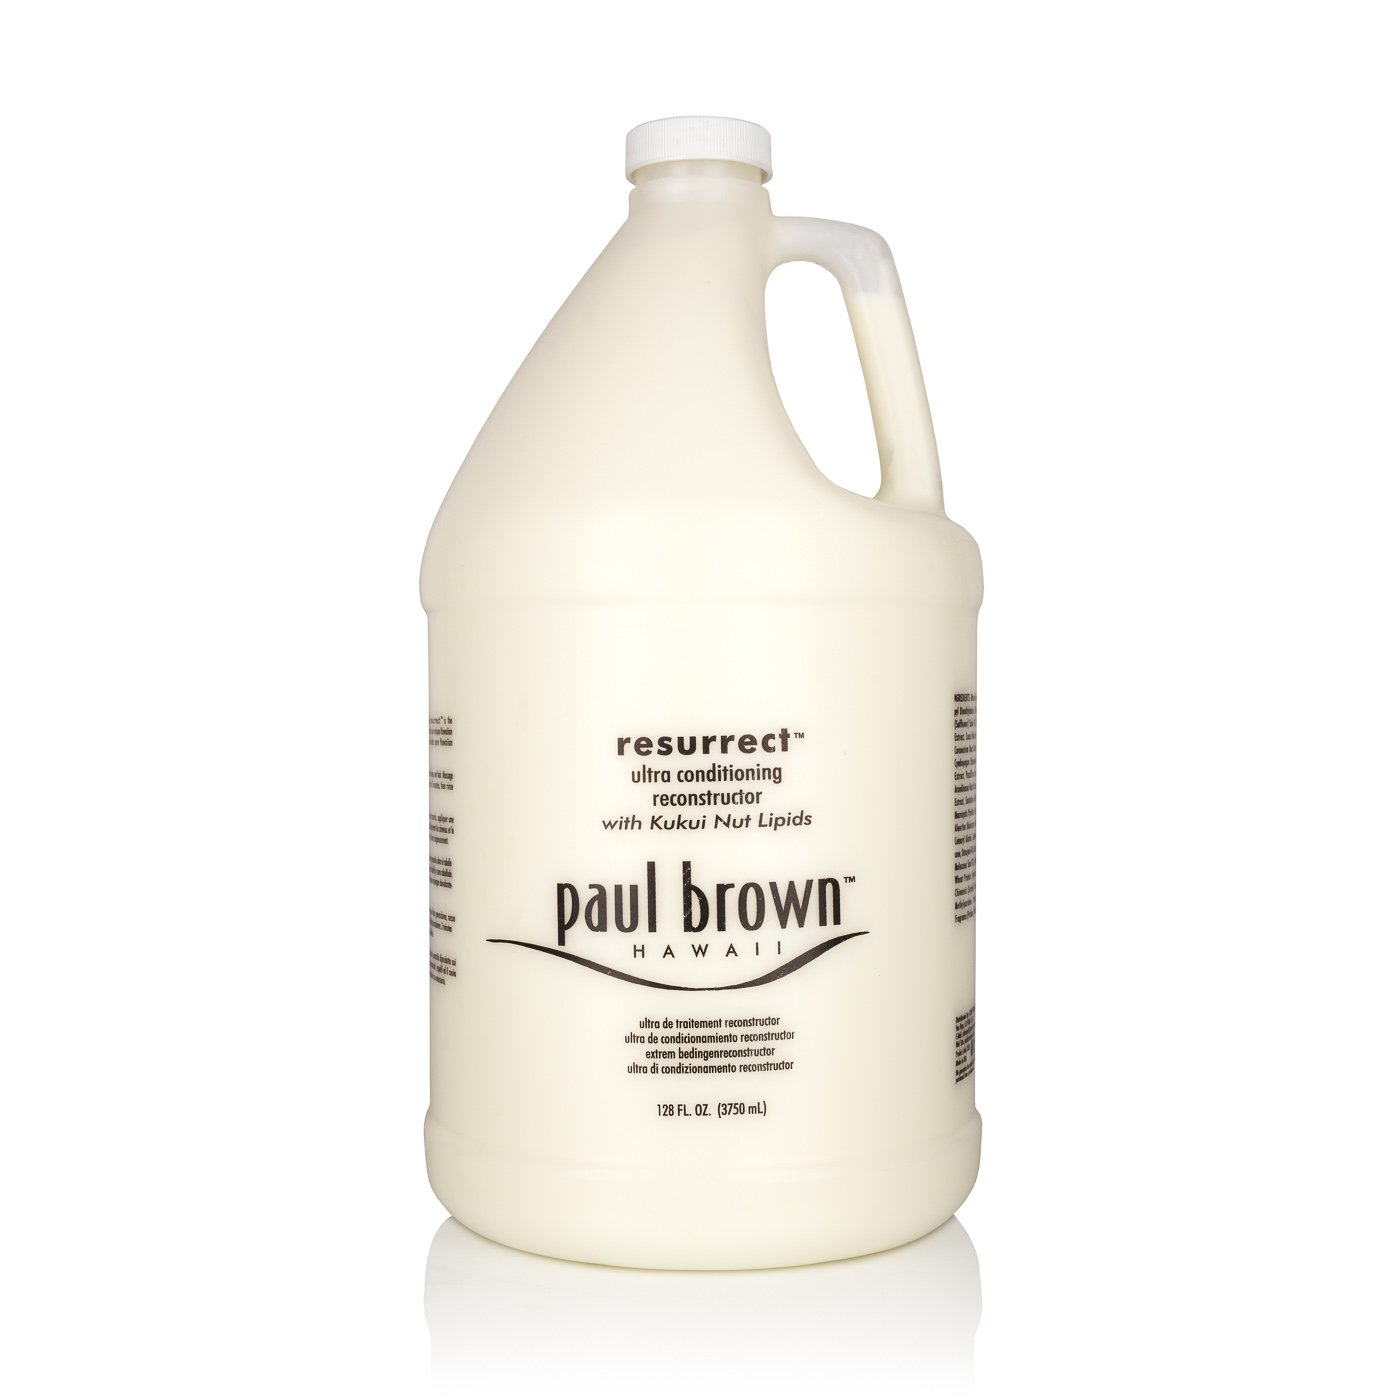 Paul Brown Hawaii Resurrect, 1 Gallon RESURRECT-GAL